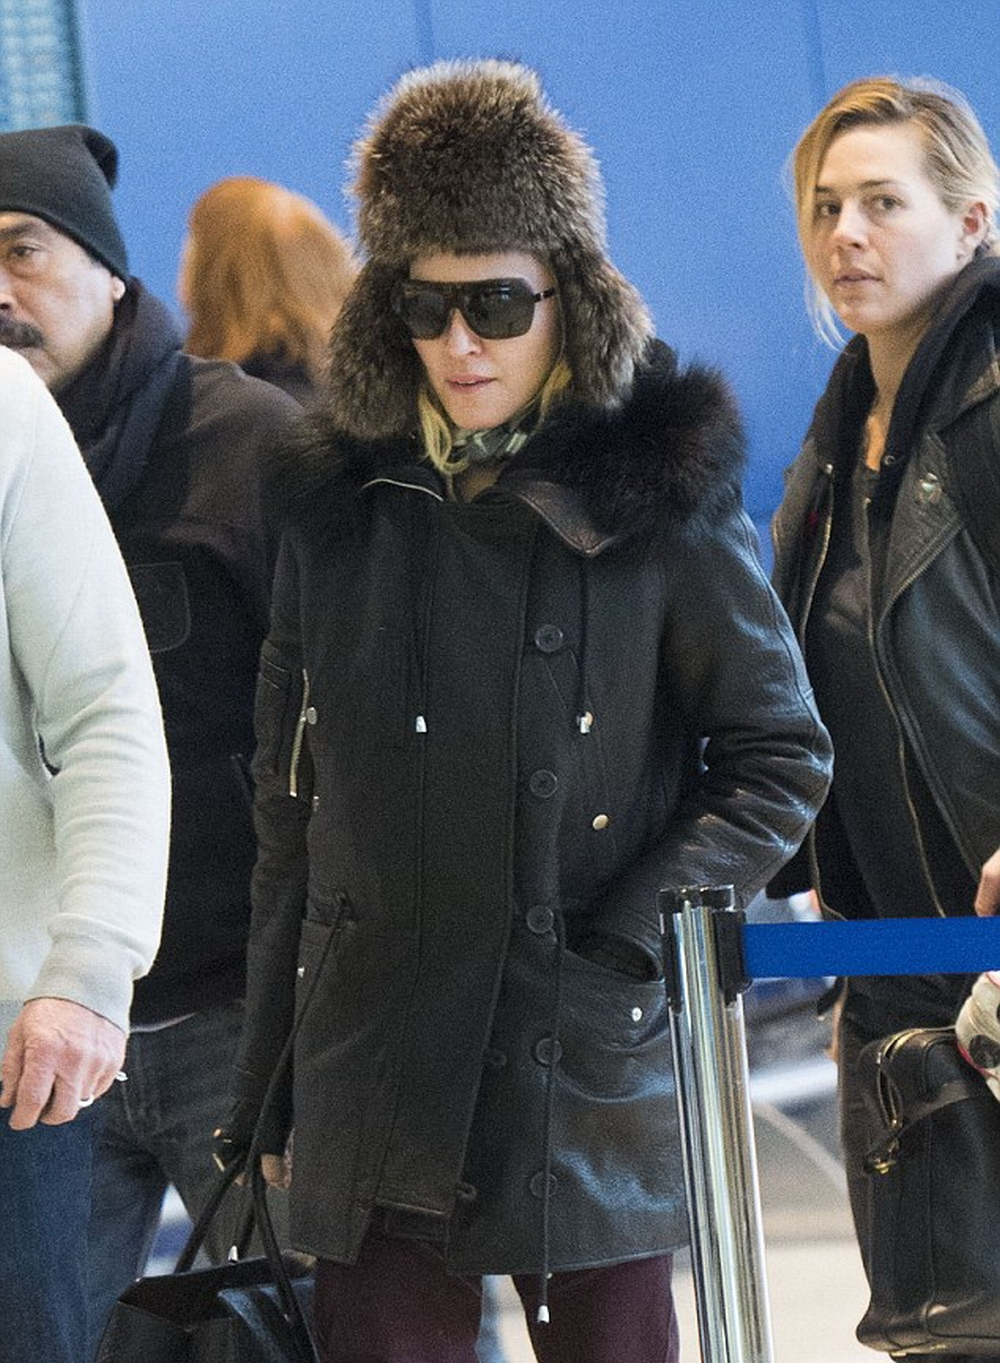 Madonna at JFK airport, New York - 1 February 2015 - Pictures (4)